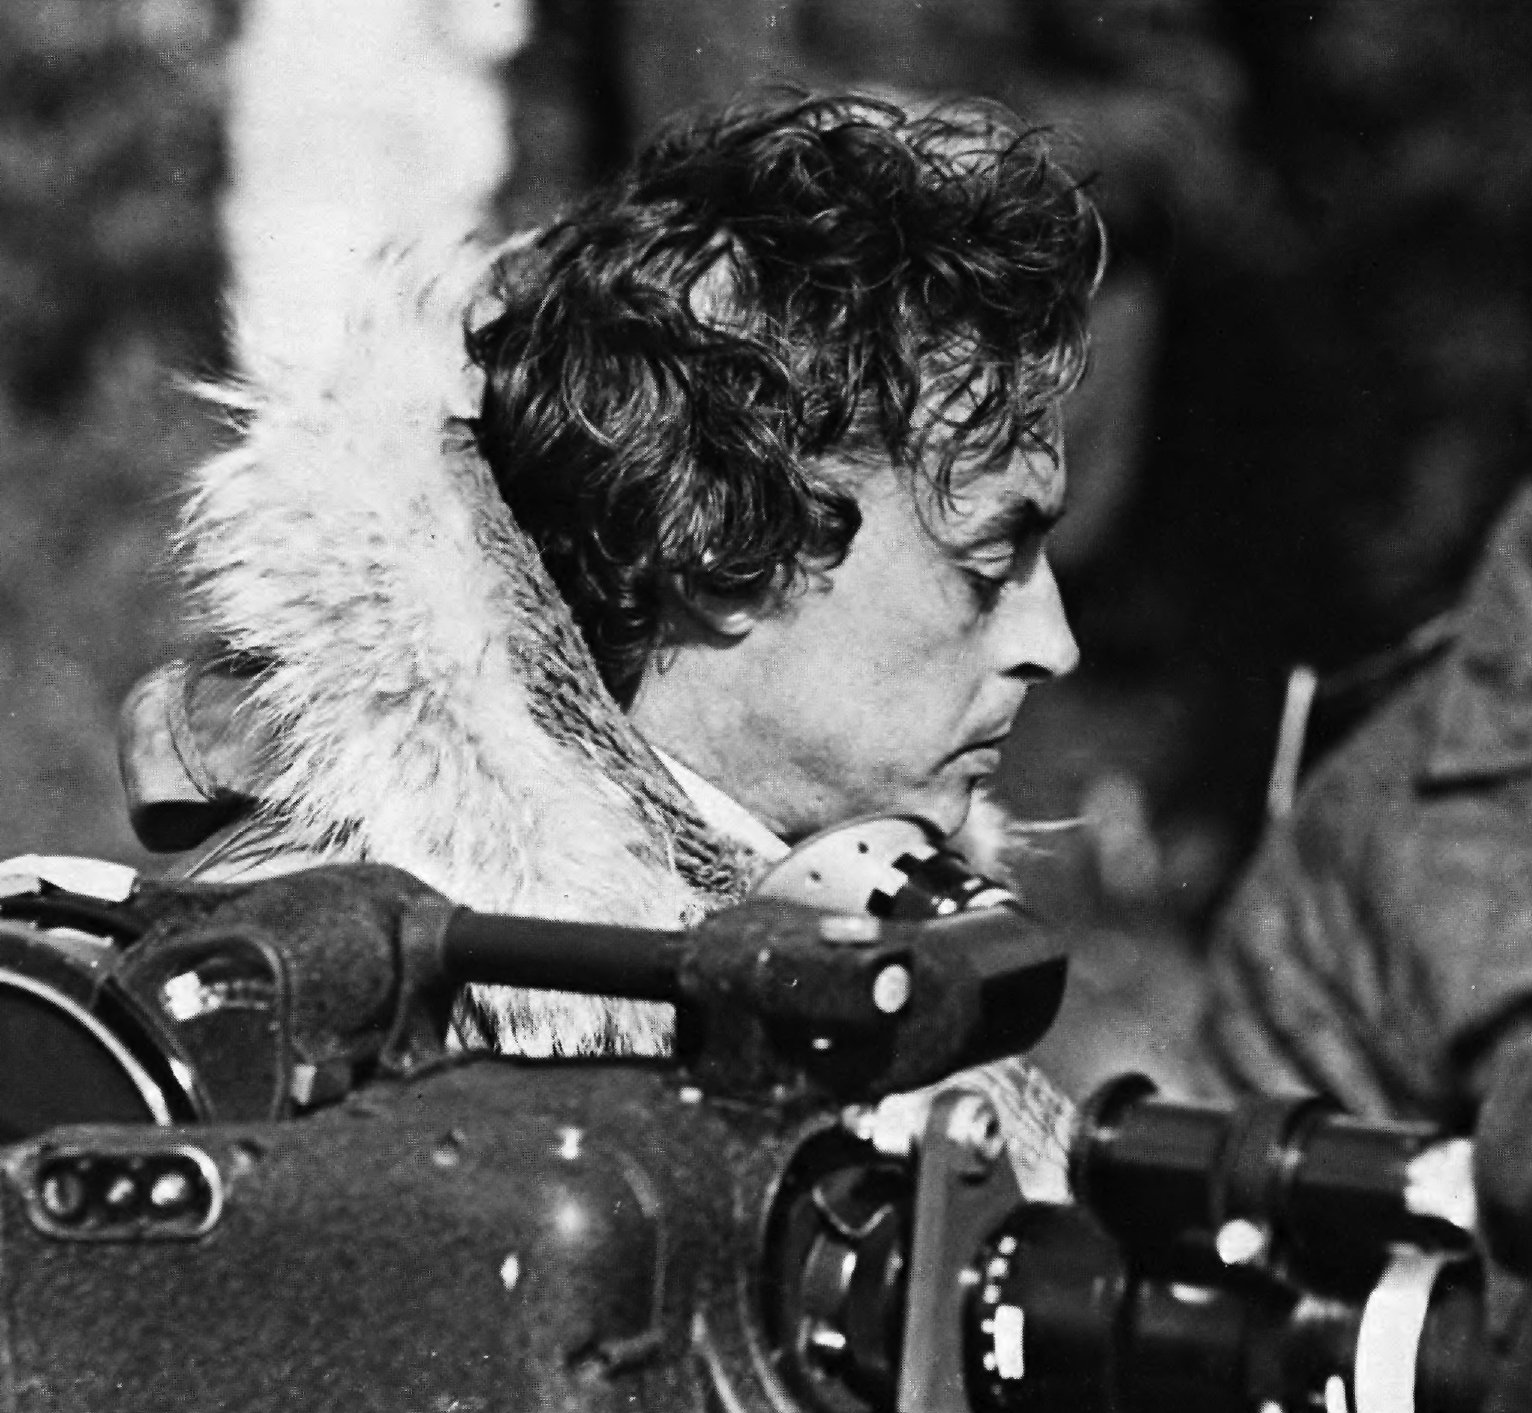 Flashback Barry Lyndon The American Society Of Cinematographers Understanding A Microswitch Youtube Alcott Says Kubrick Gave Him His Break On 2001 Space Odyssey By Asking To Carry As Cinematographer After Director Photography Geoffrey